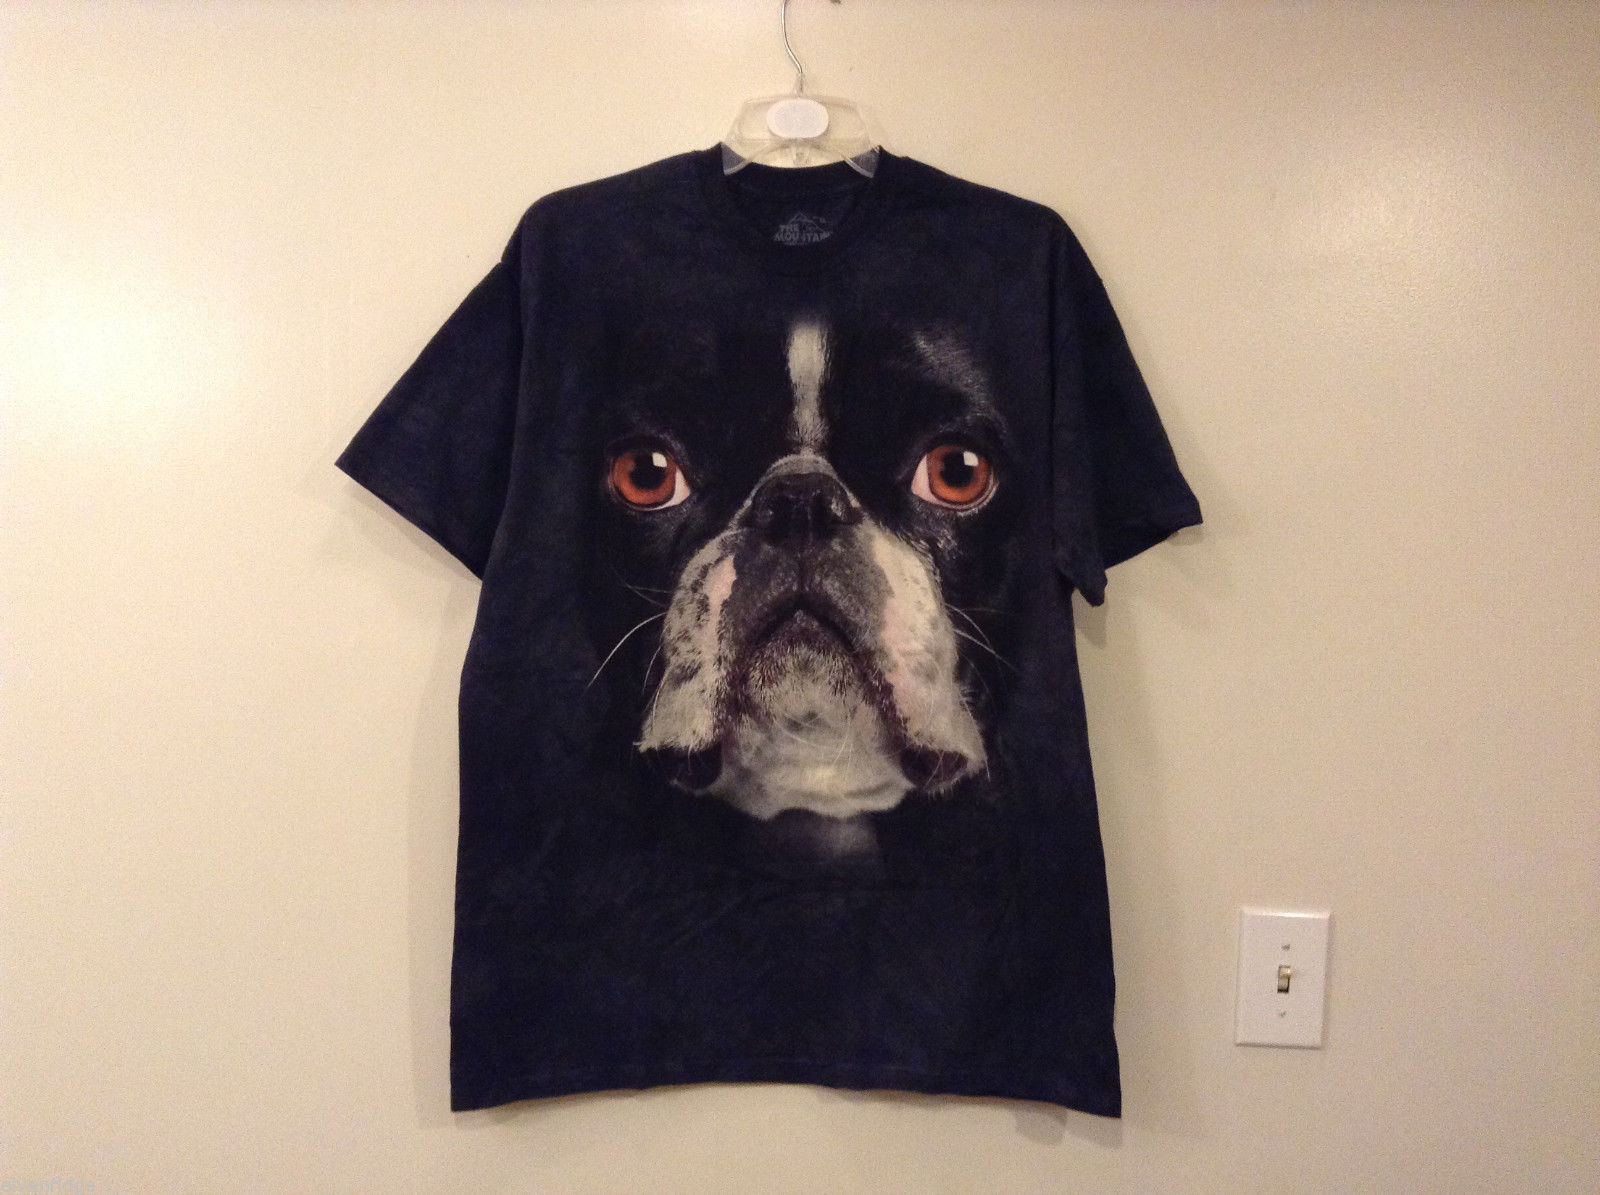 The Mountain Black 100% Cotton Boston Terrier Face Print T-shirt, size XL